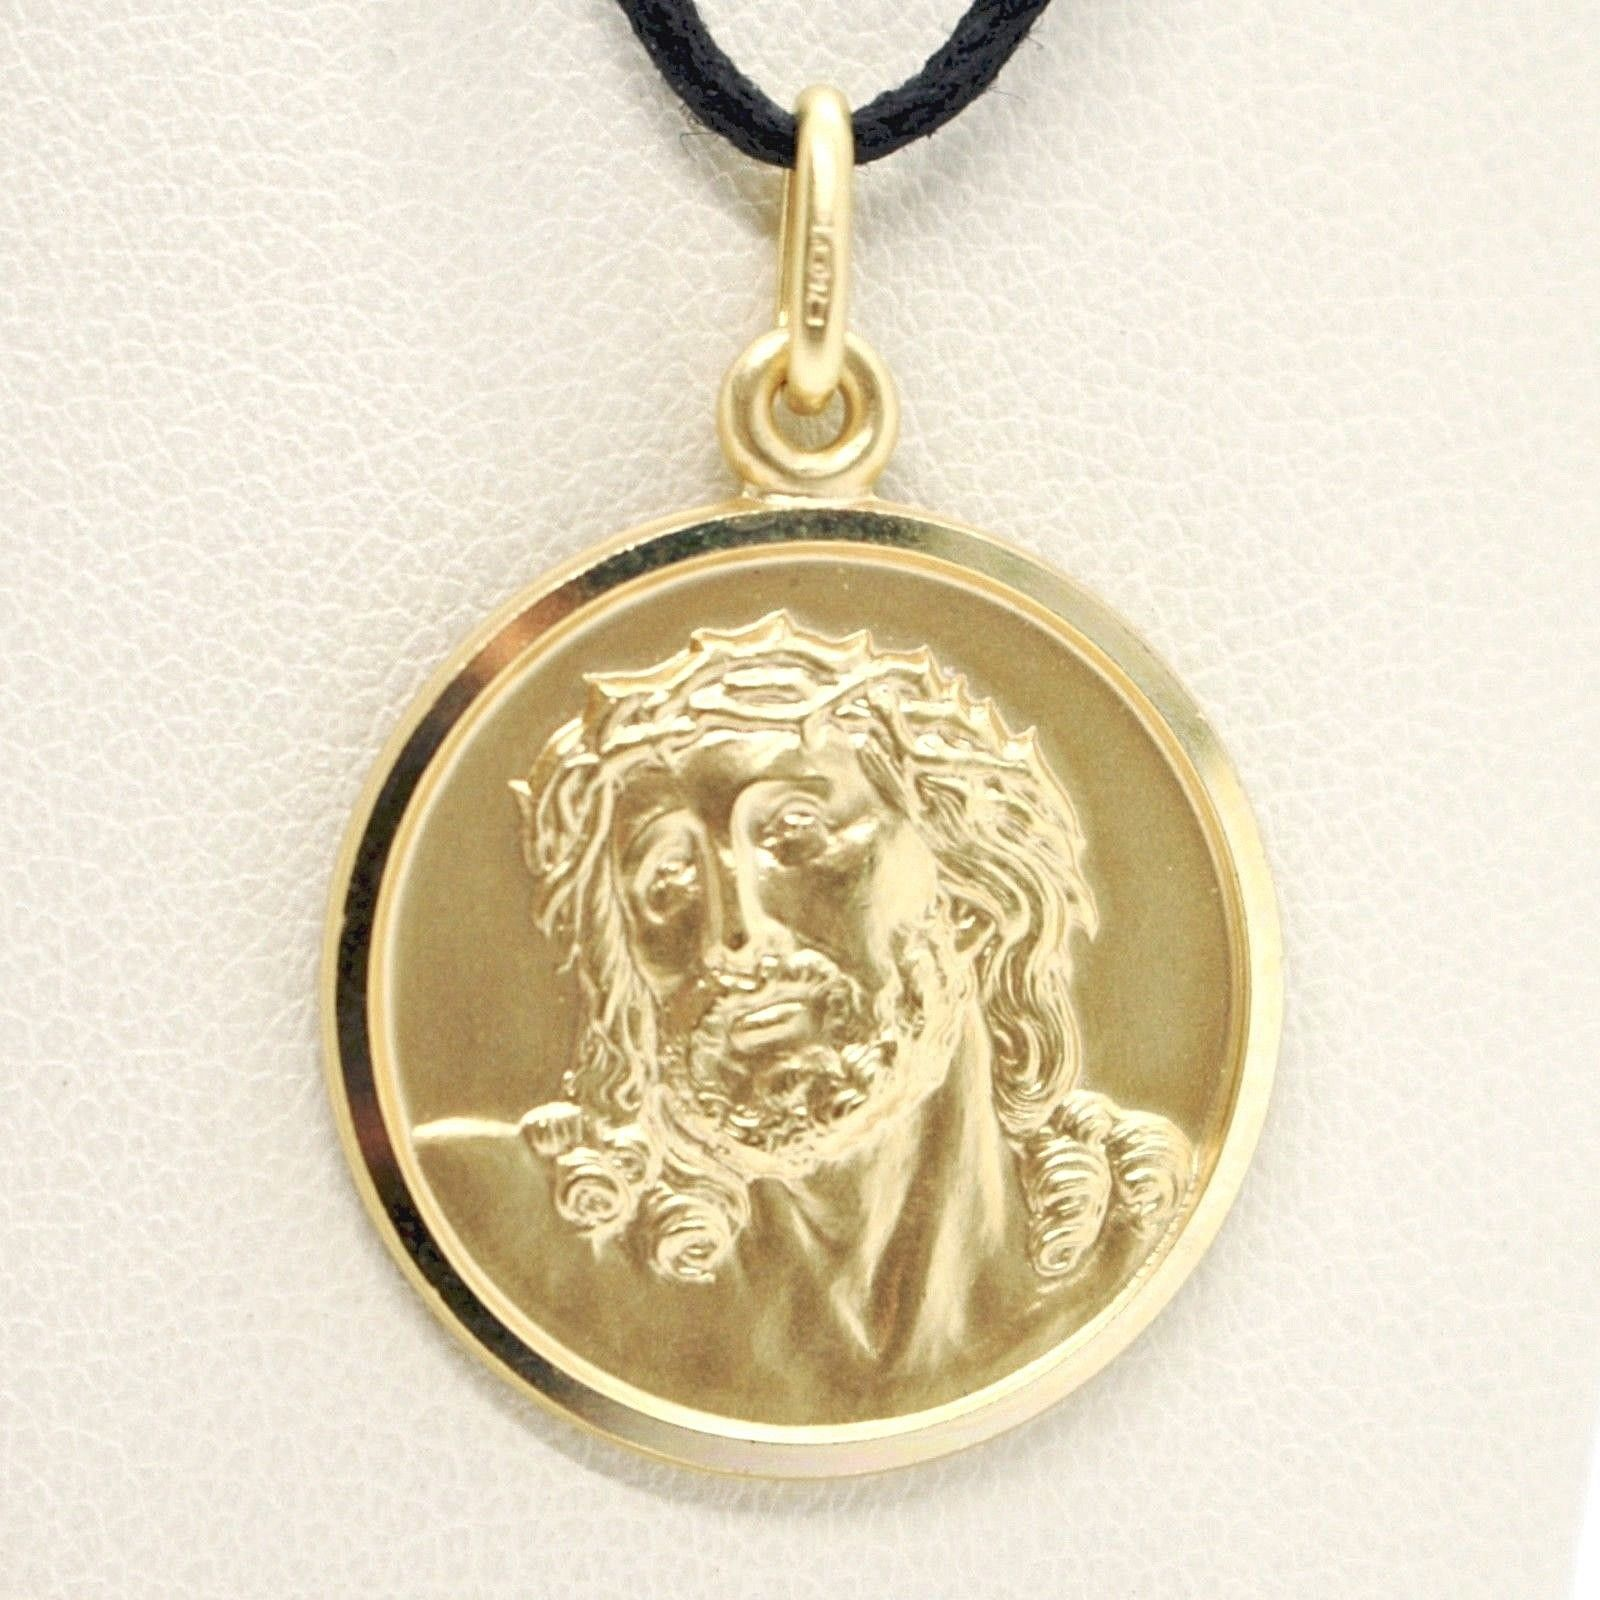 18K YELLOW GOLD ECCE HOMO, JESUS CHRIST FACE MEDAL DETAILED MADE IN ITALY, 19 MM